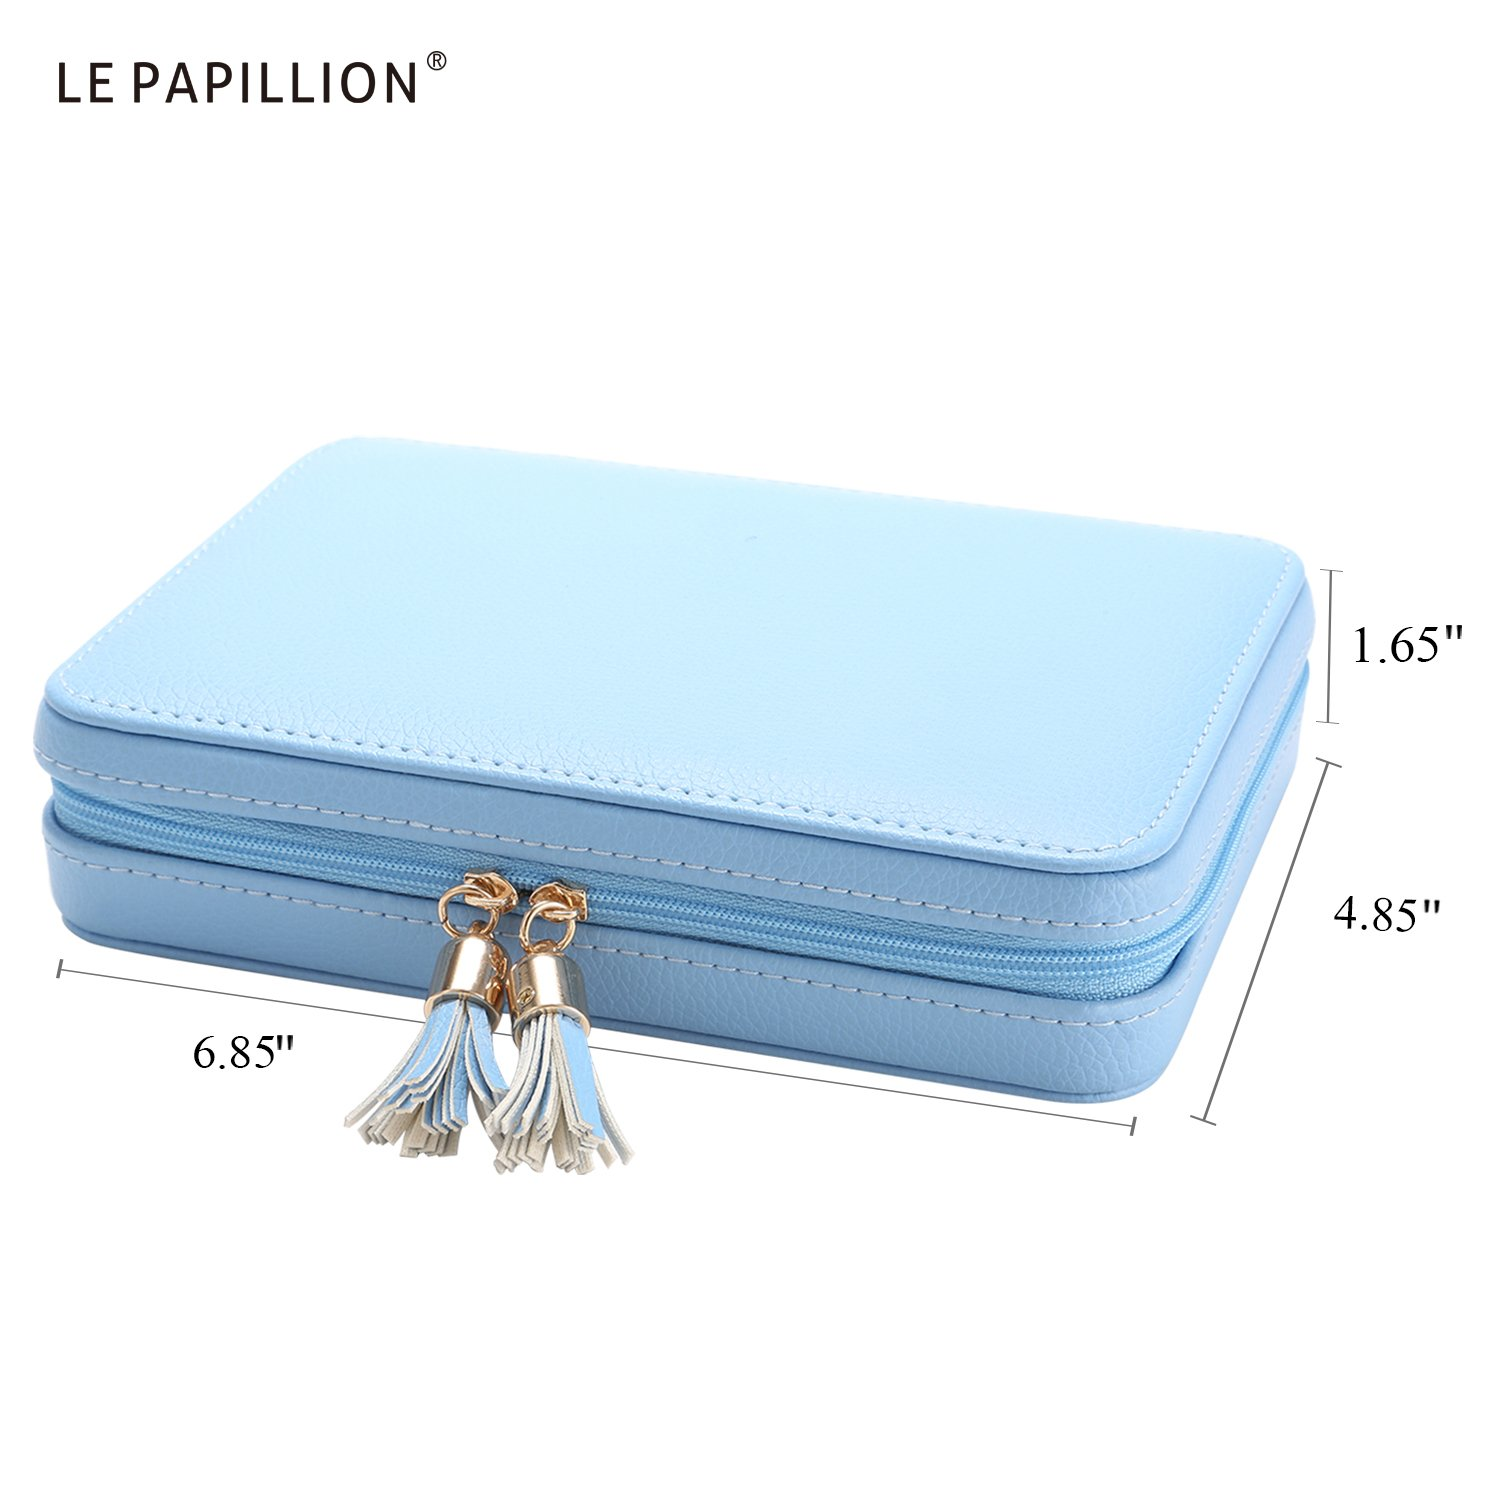 LE Papillion Small Jewelry Box Travel Jewelry Box Jewelry Travel Case Jewelry Organizer with Large Mirror, Gifts for Women, Great Gift Idea(Blue) by LE PAPILLION JEWELRY (Image #5)